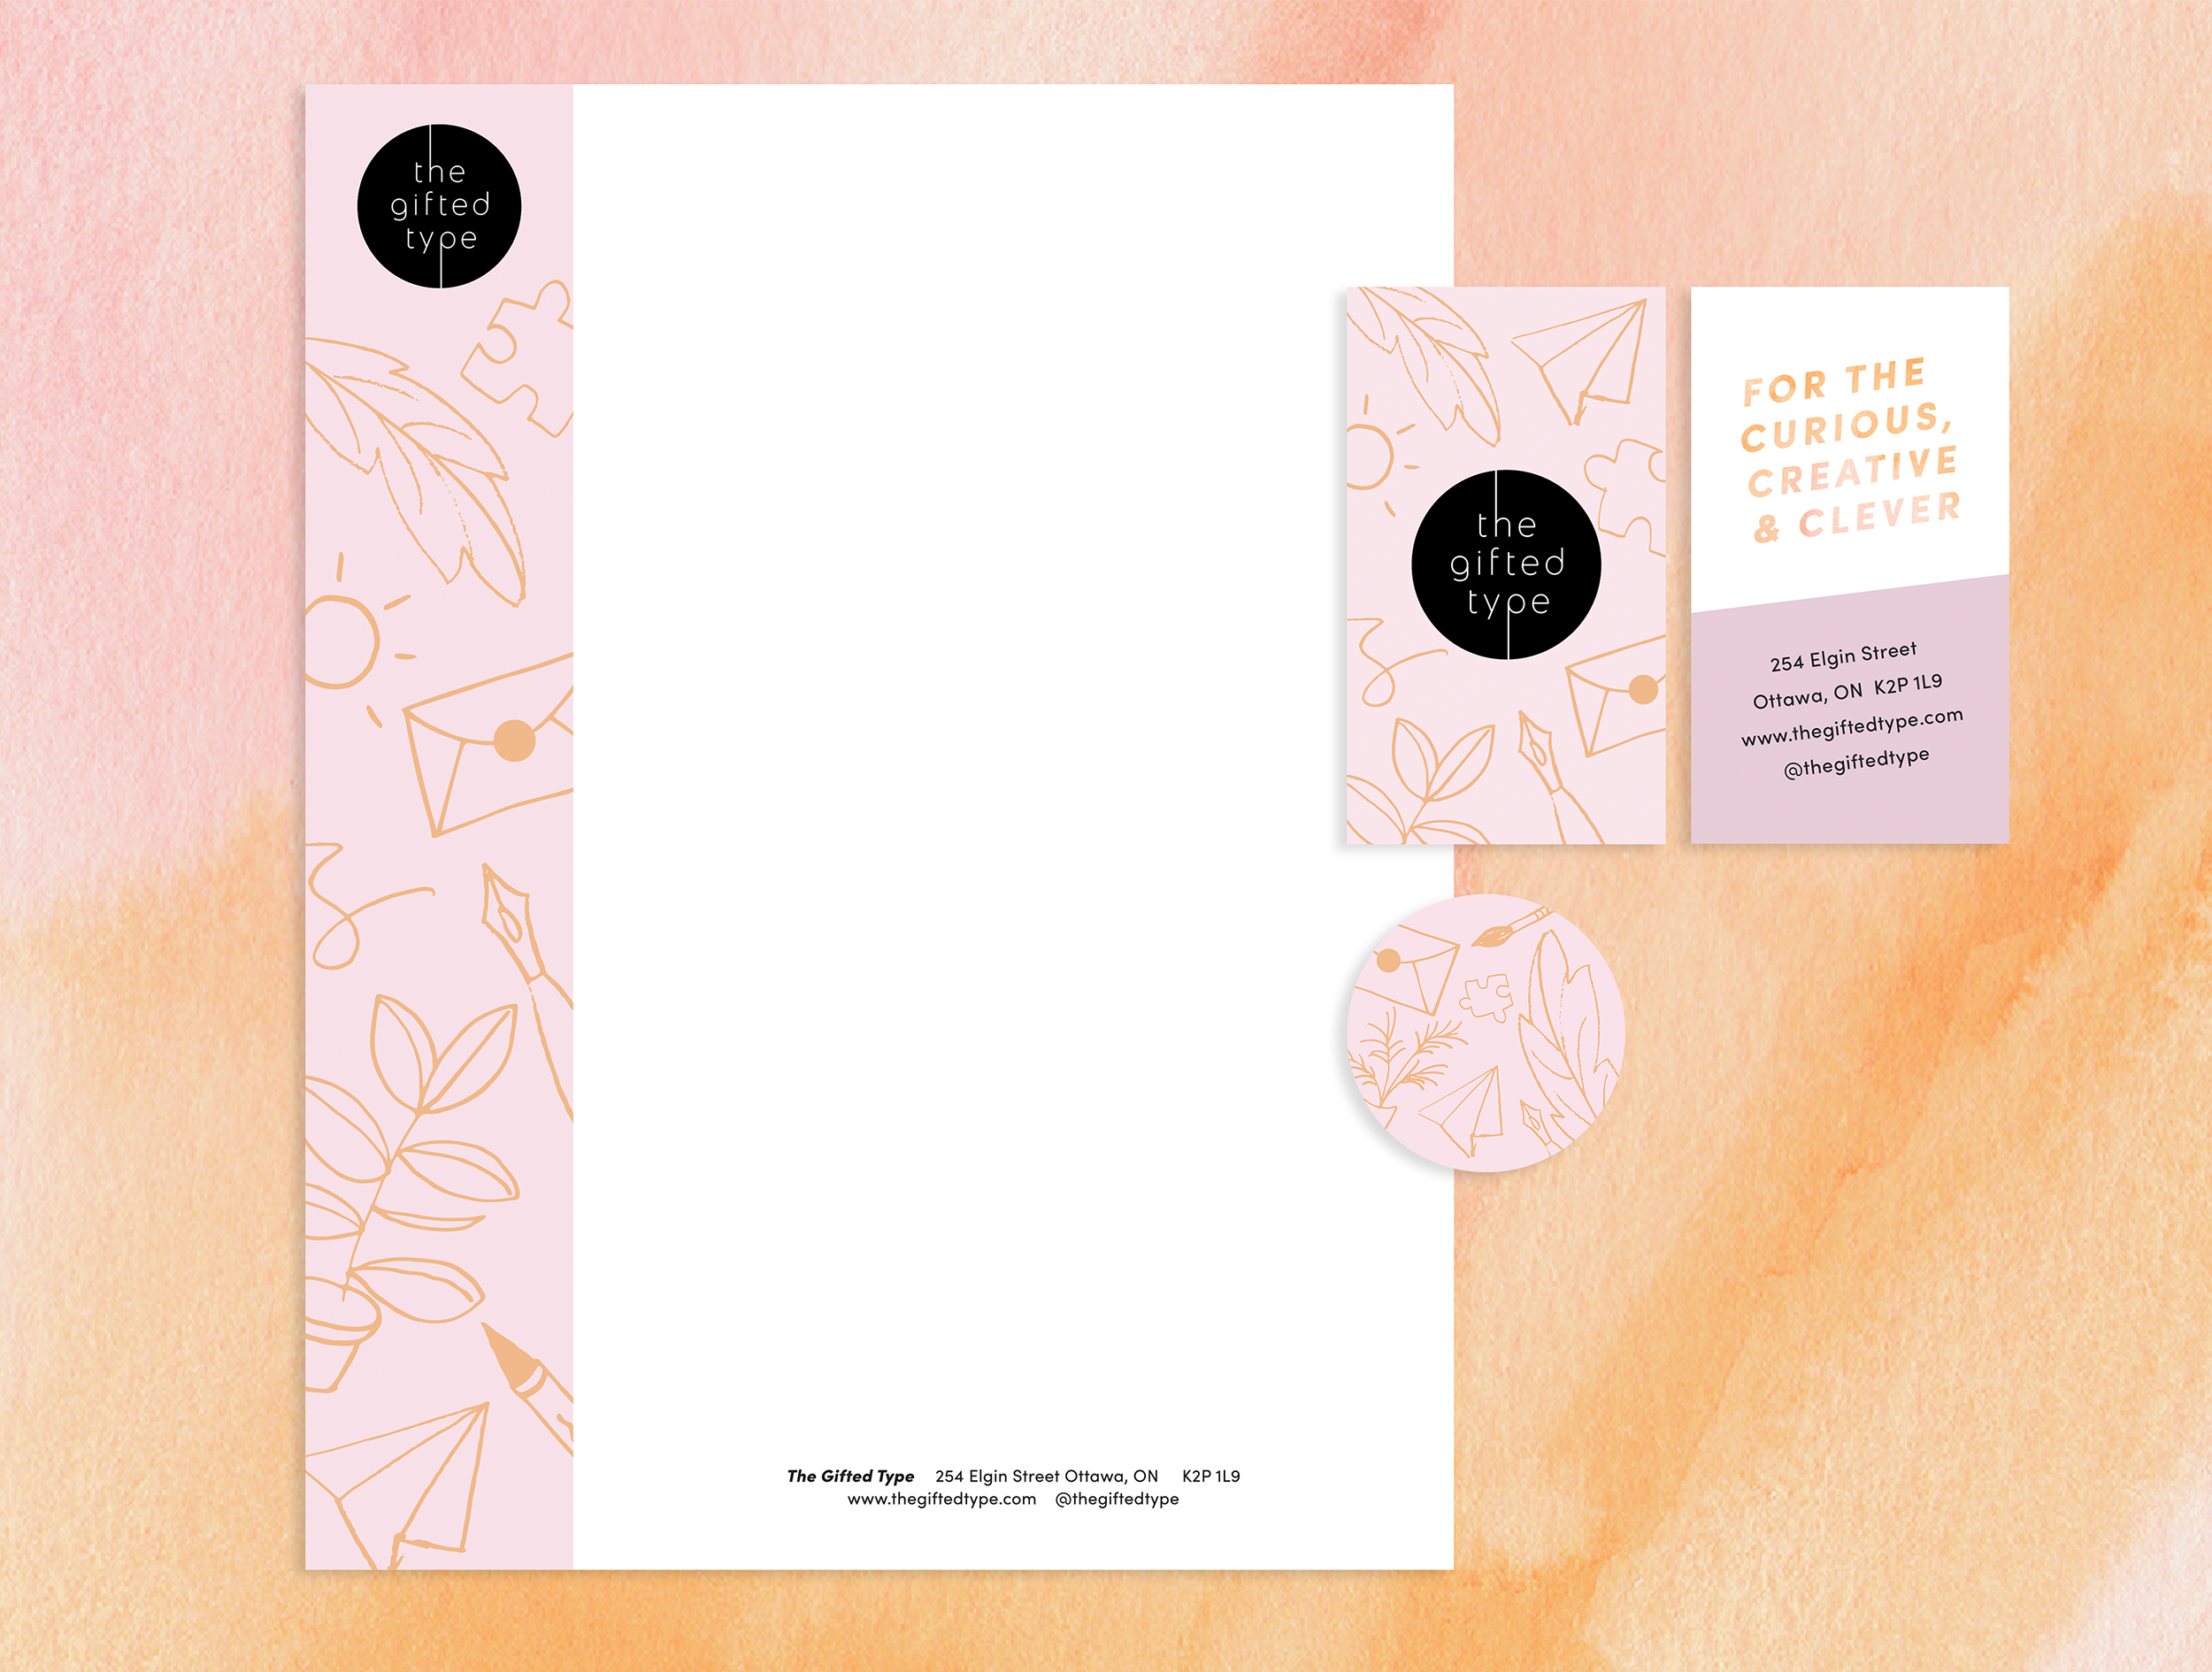 Stationery and brand design for Ottawa retail shop